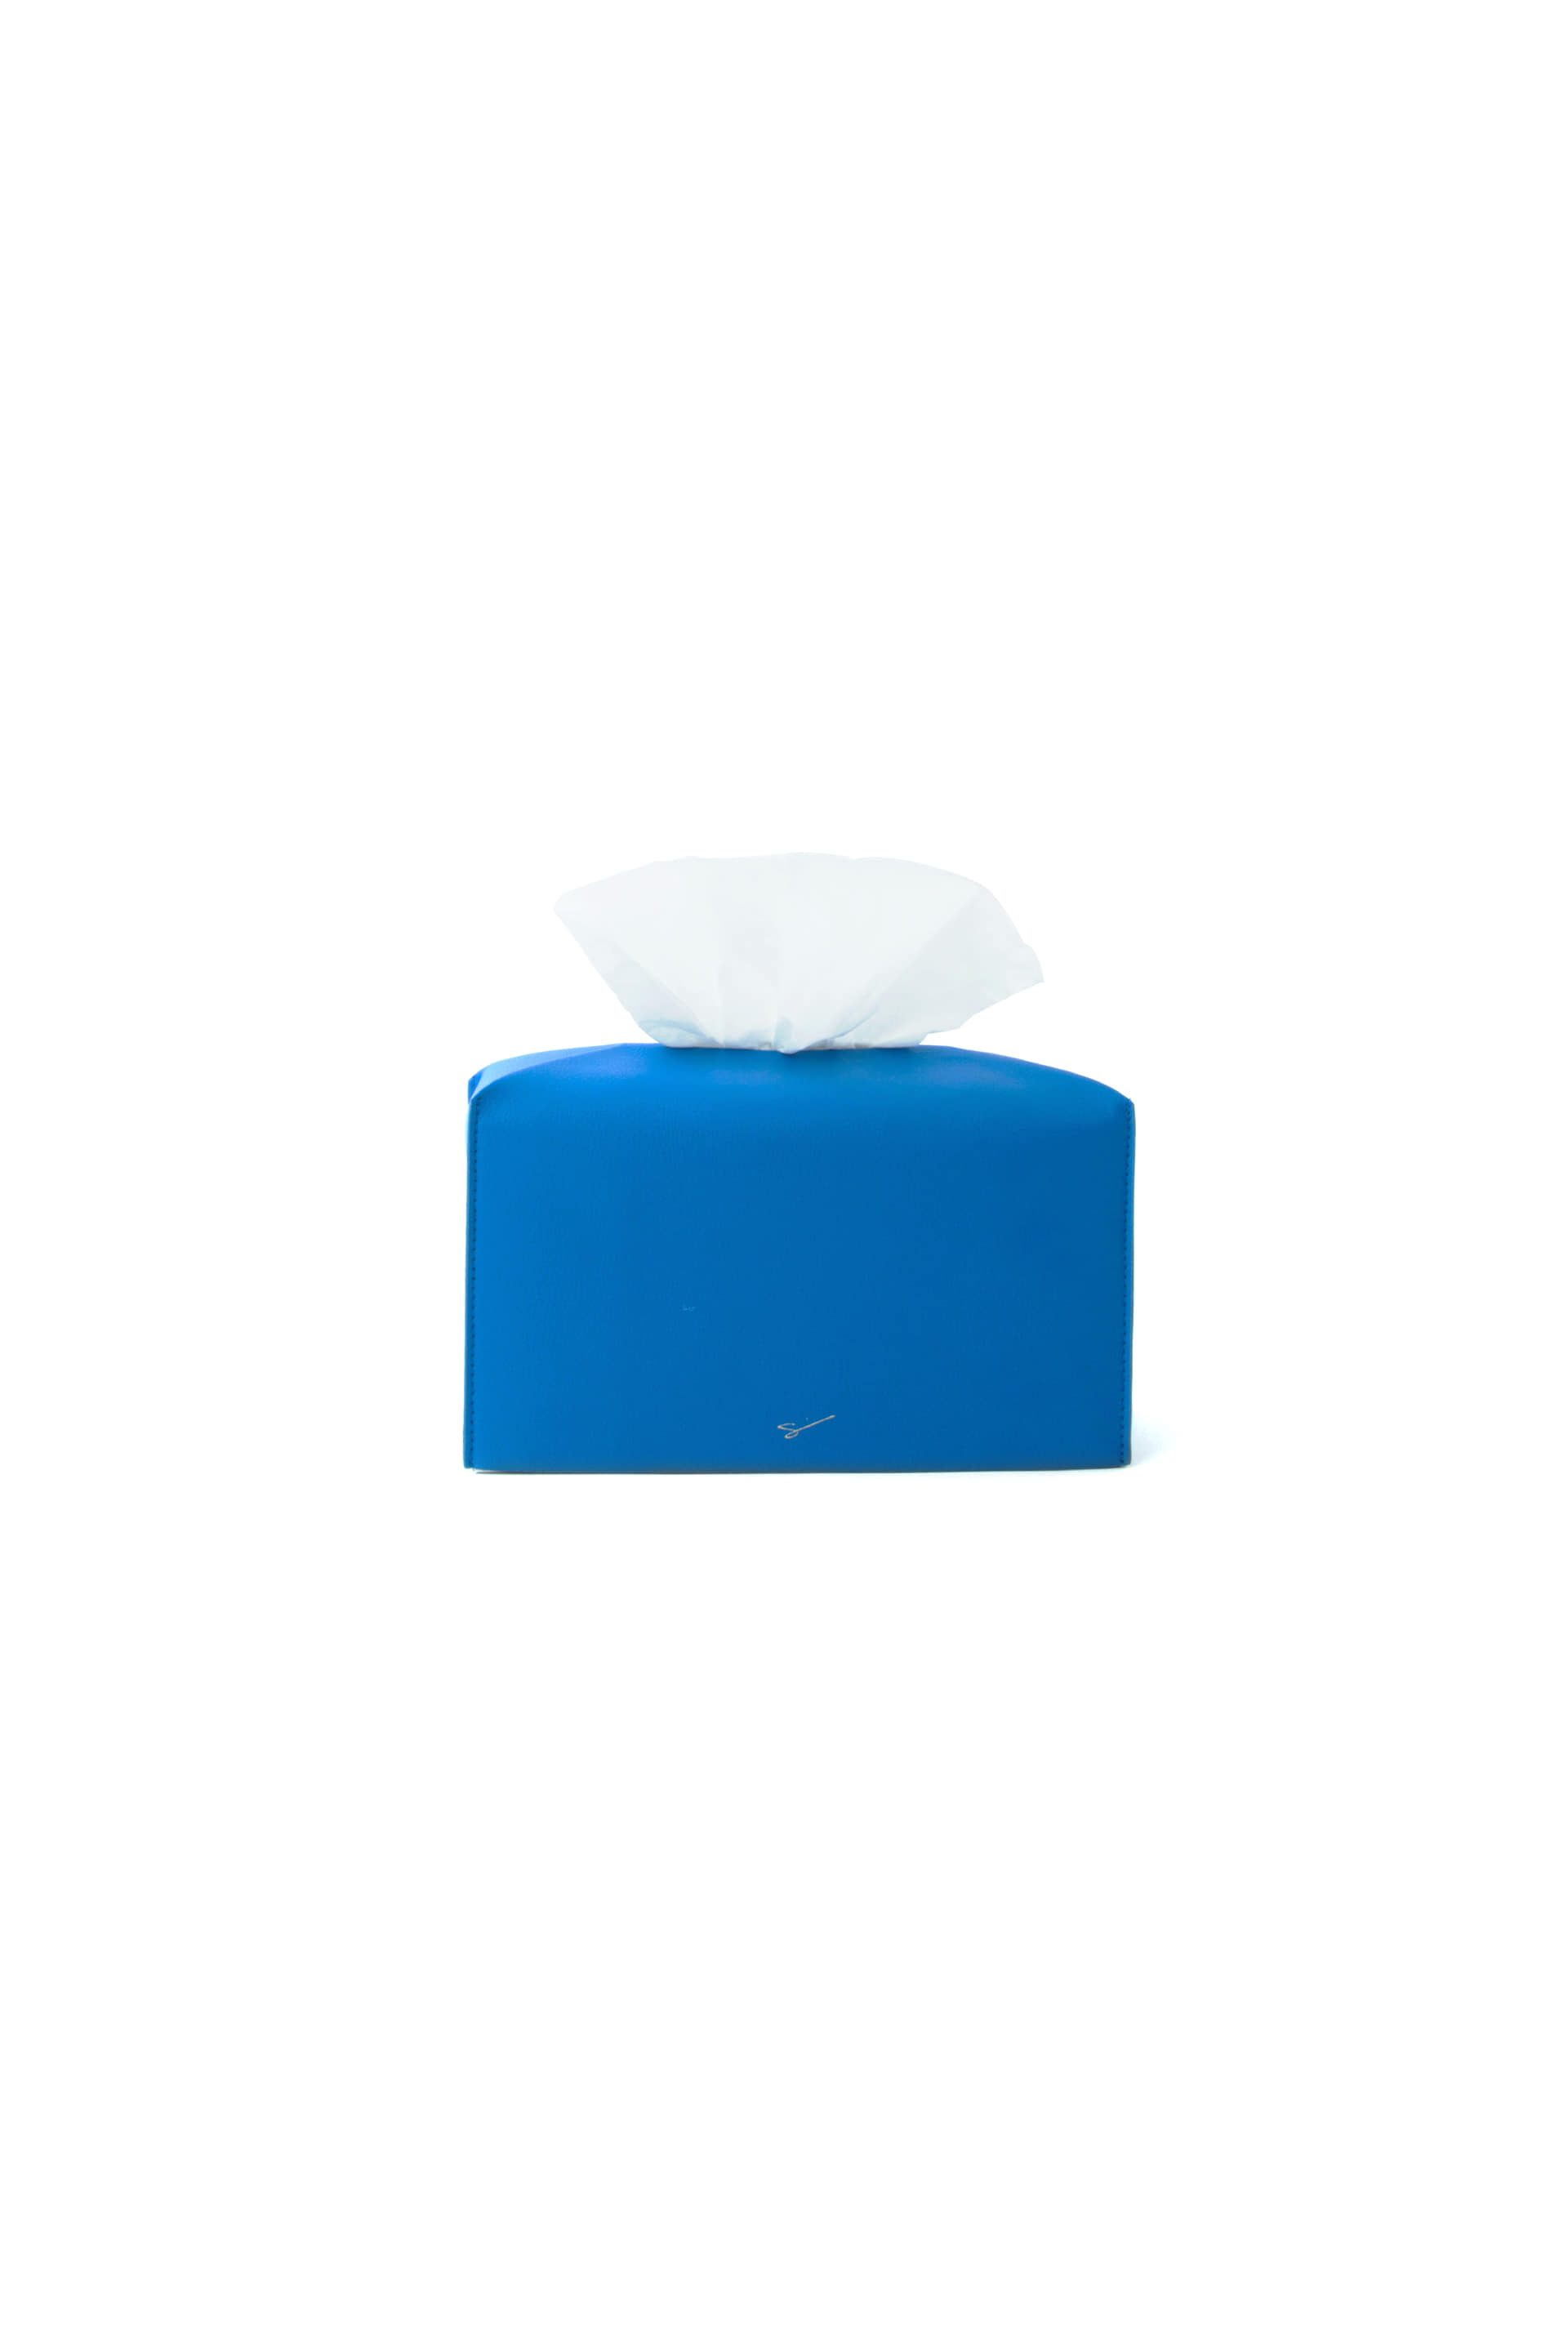 TISSUE CASE L 08 C.Blue